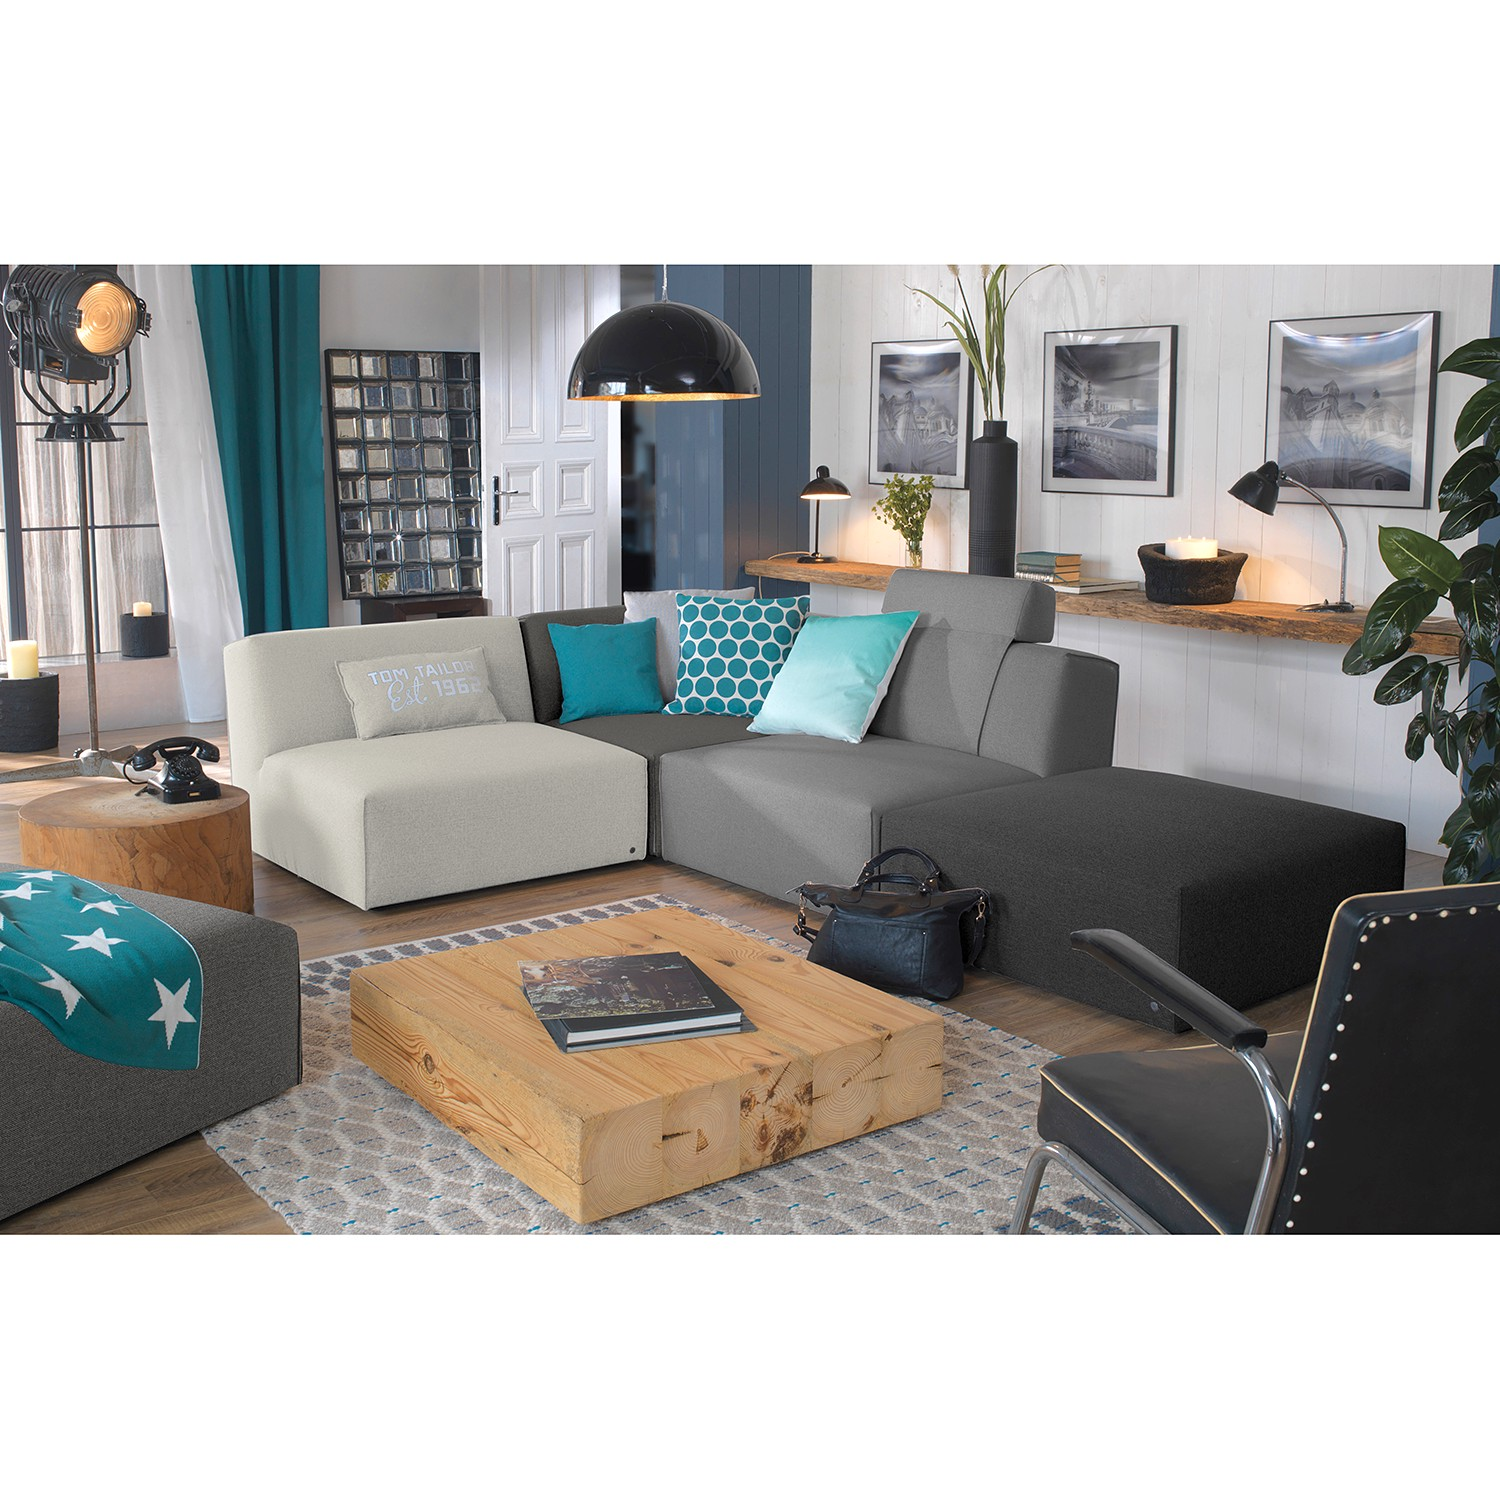 home24 Tom Tailor Ecksofa Elements II Grau 100% Polyester 287x70x287 cm (BxHxT) Modern